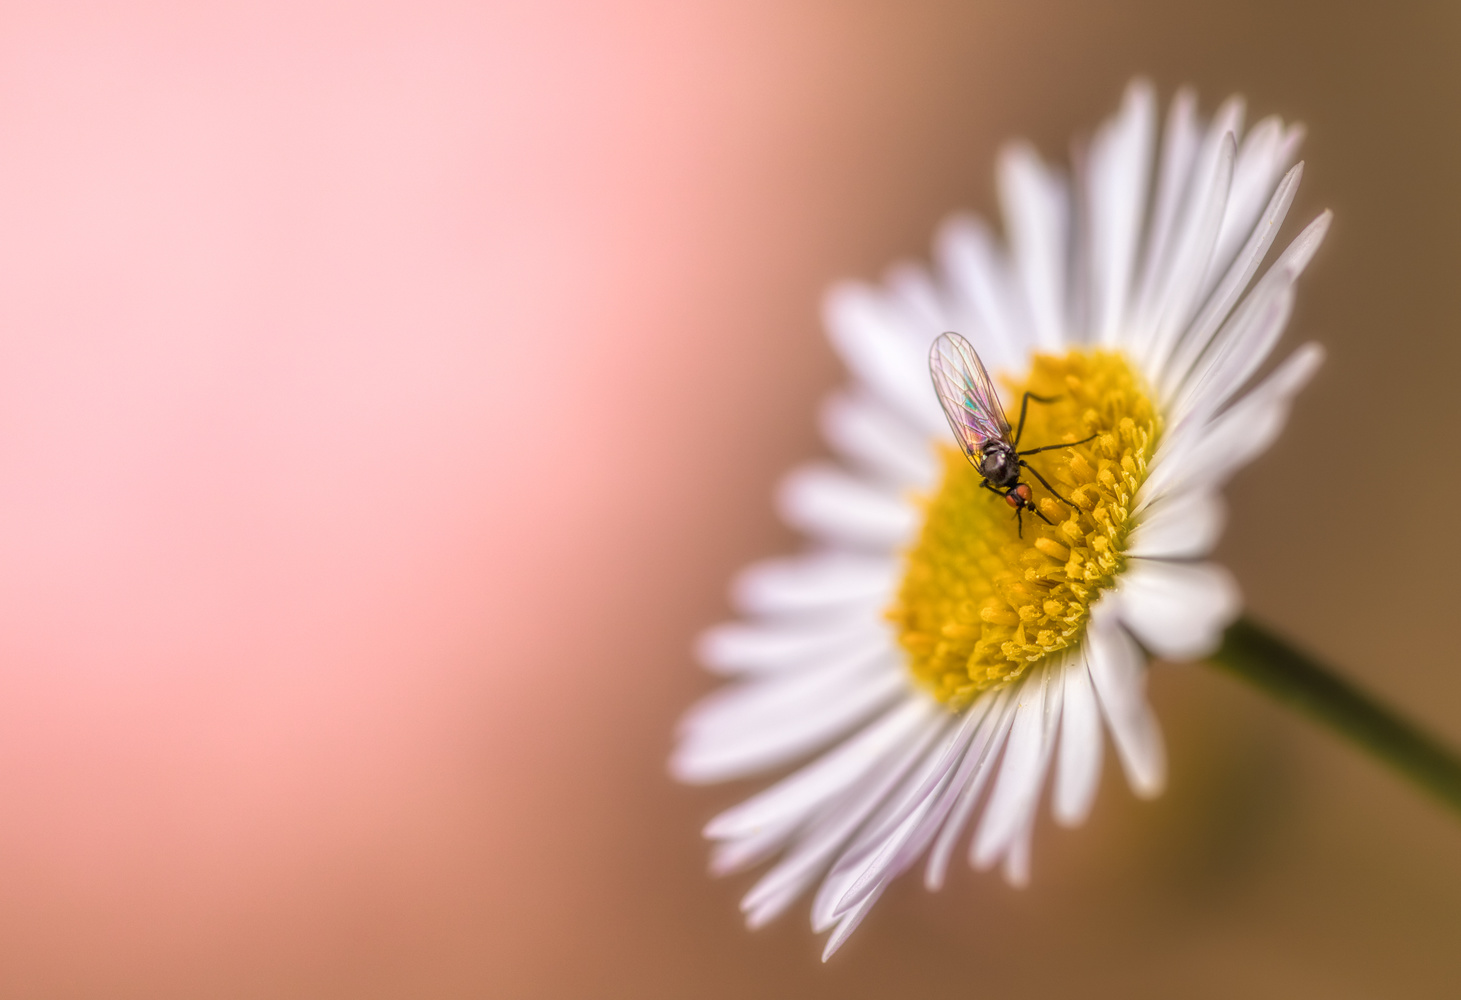 Spring on Pink by Tiago Marques